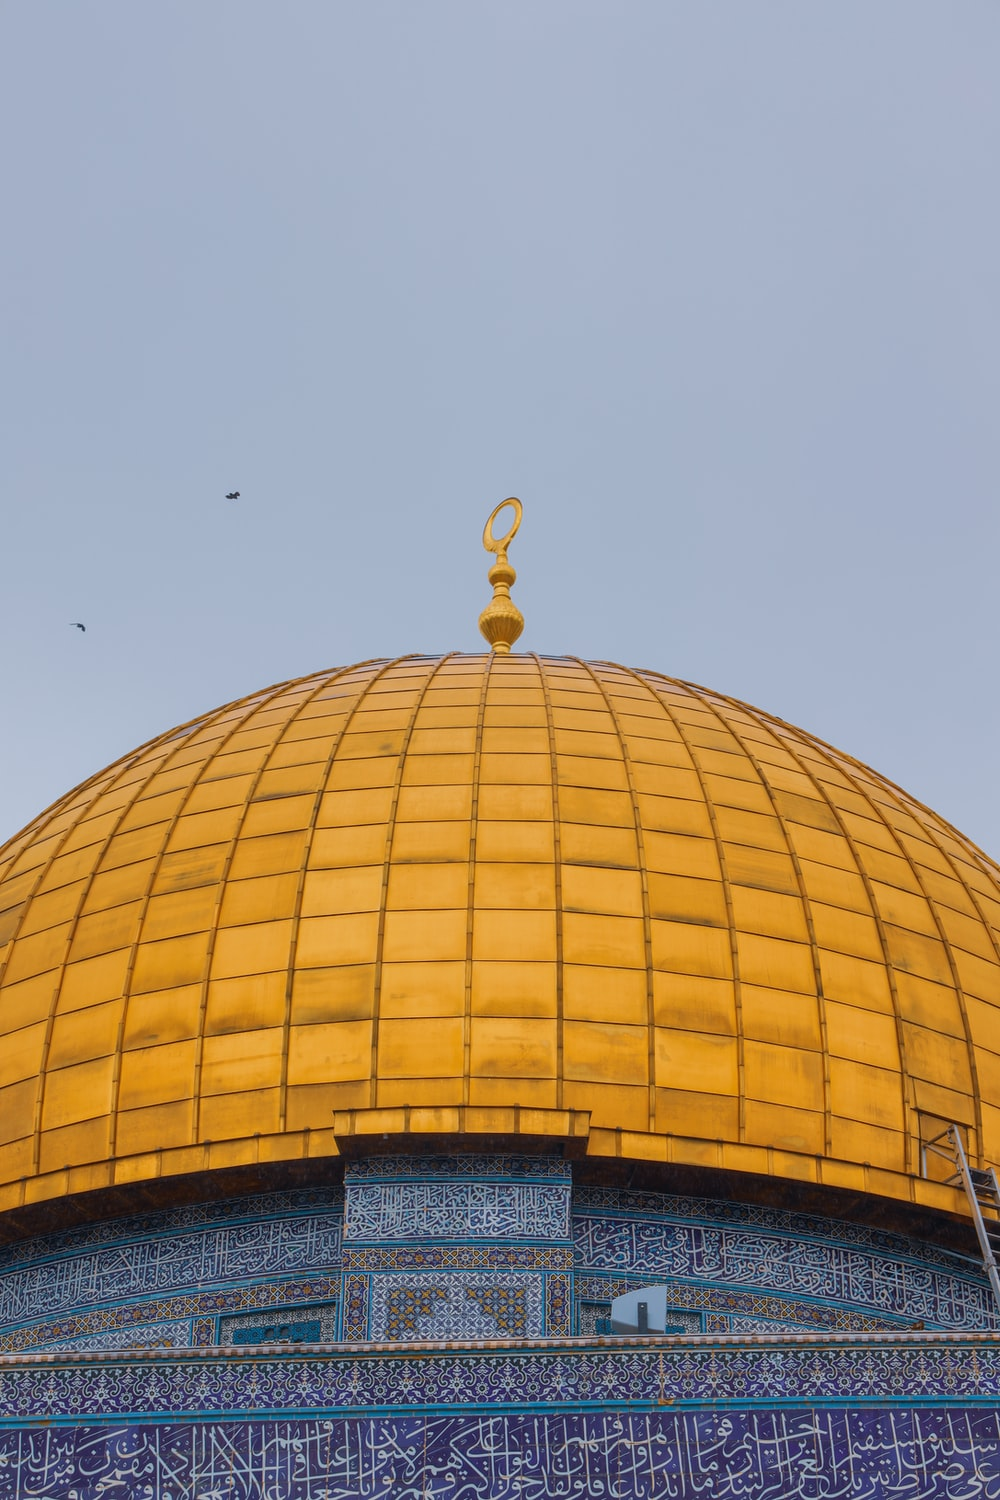 yellow dome building under blue sky during daytime